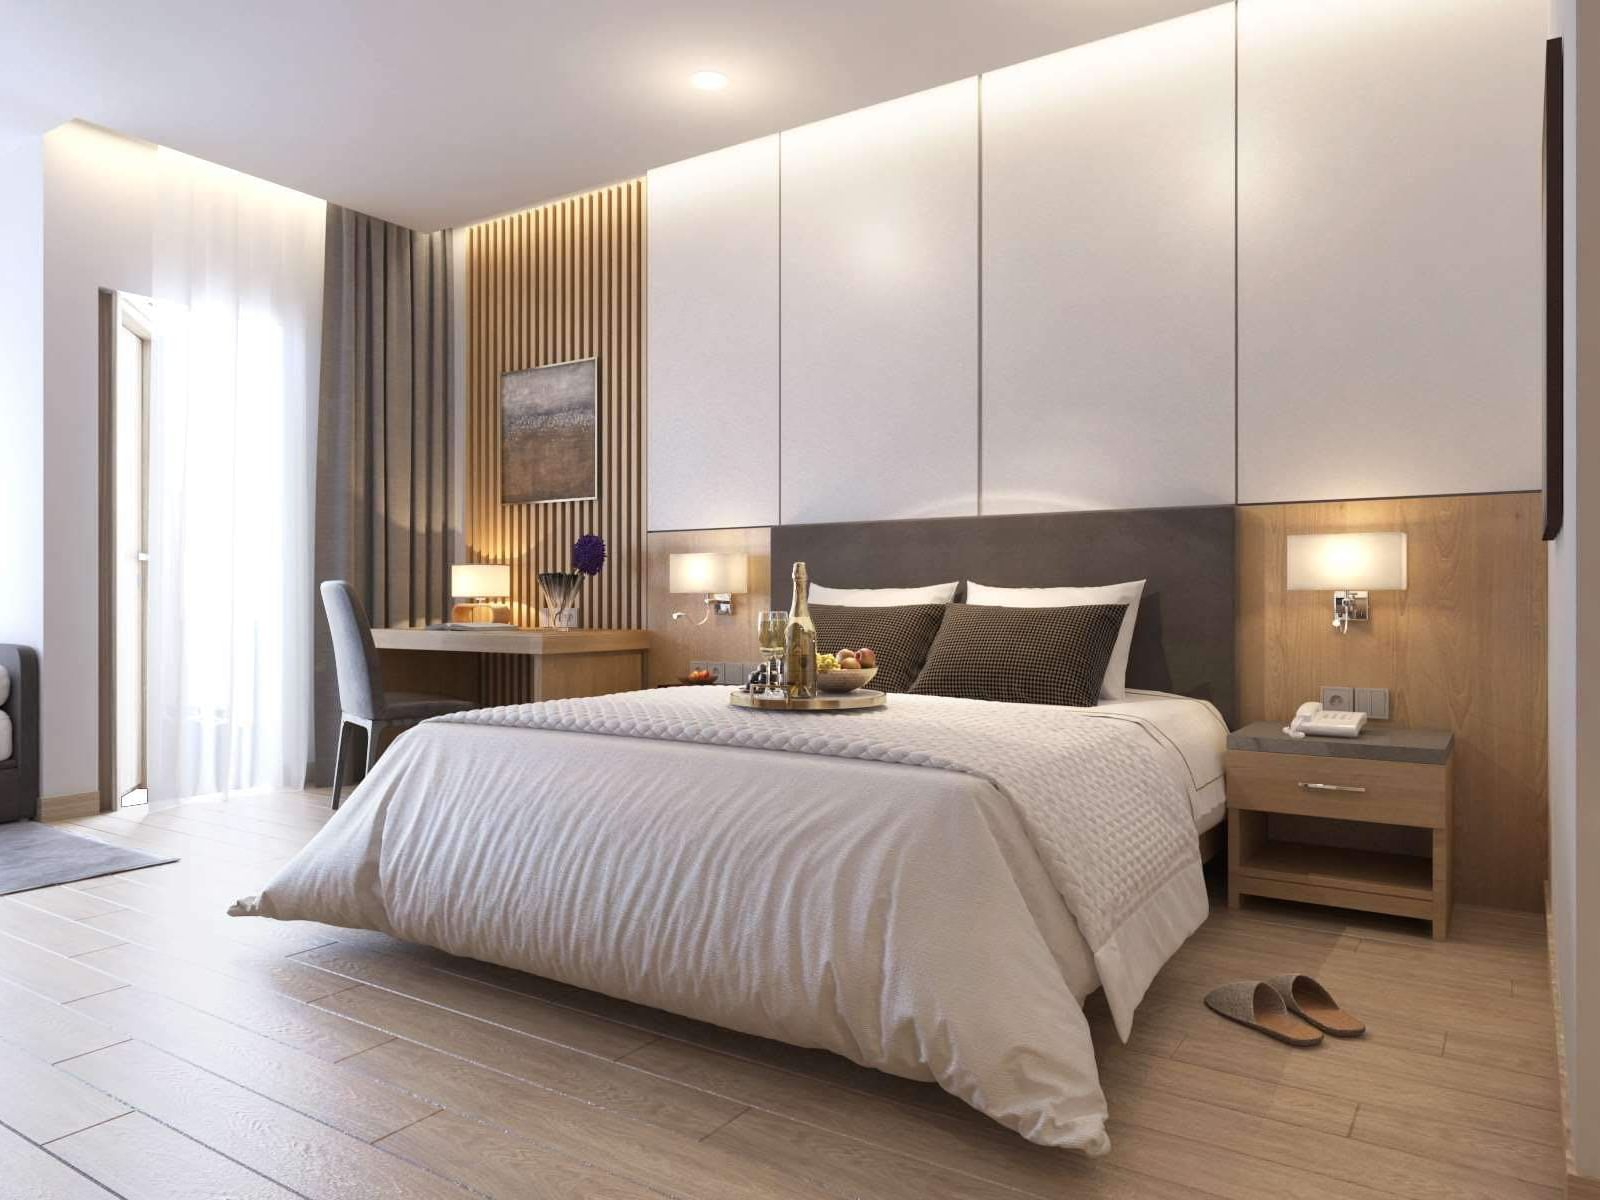 hotel room interior with king bed and modern furnishings